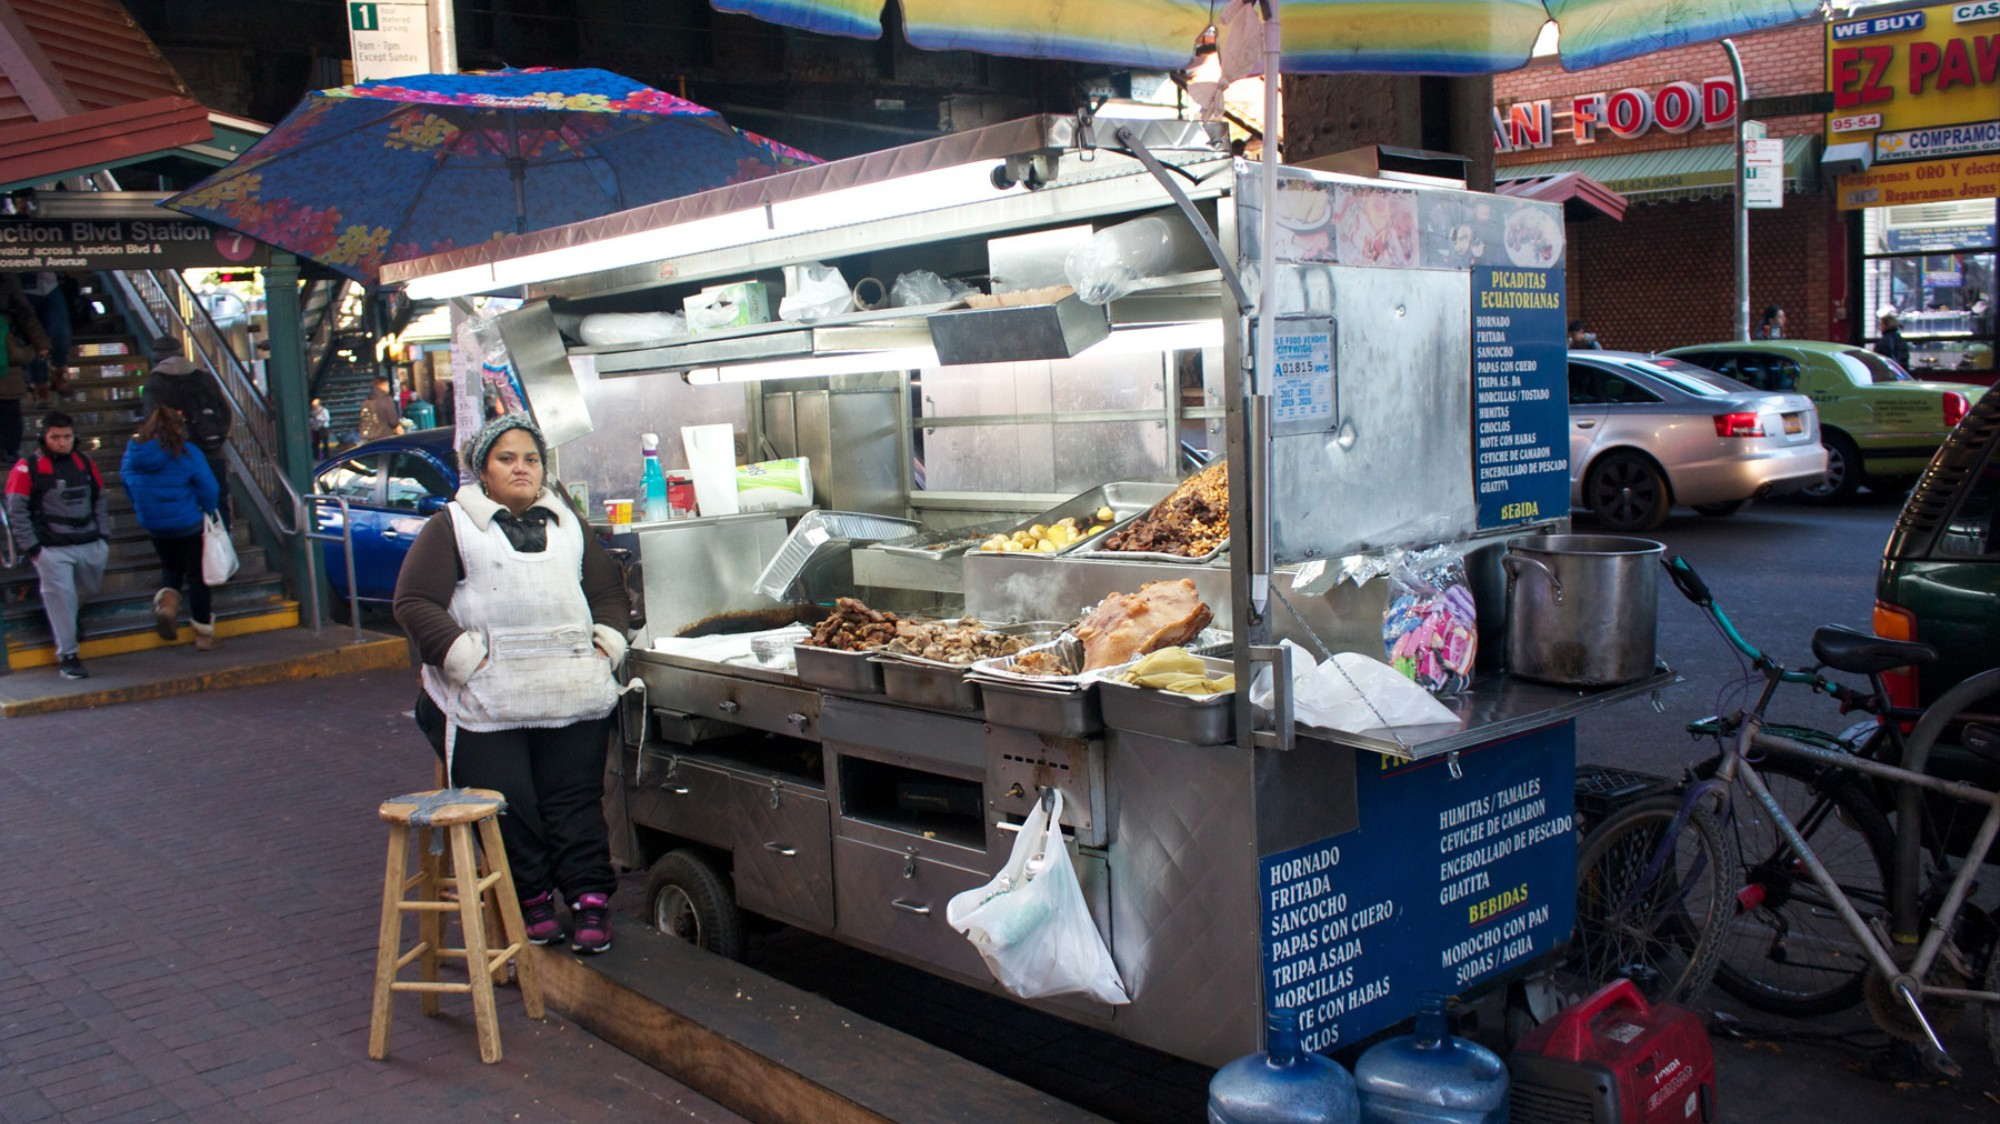 NYC Street Vendors Want to End the Black Market for Permits - VICE